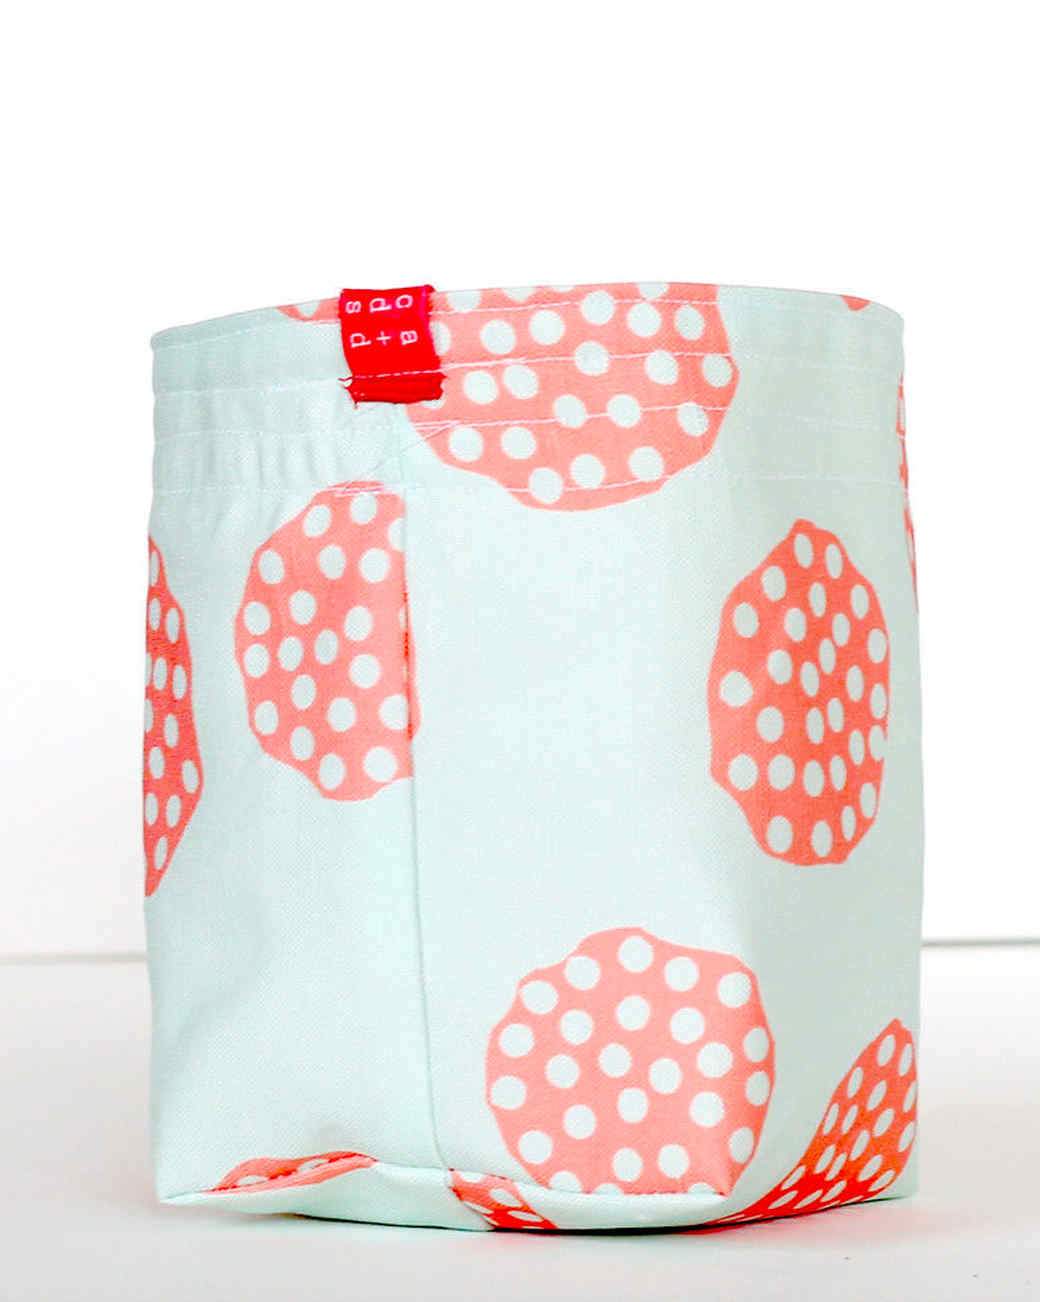 casey-d-sibley-art-design-linen-cotton-printed-fabric-storage-0914.jpg